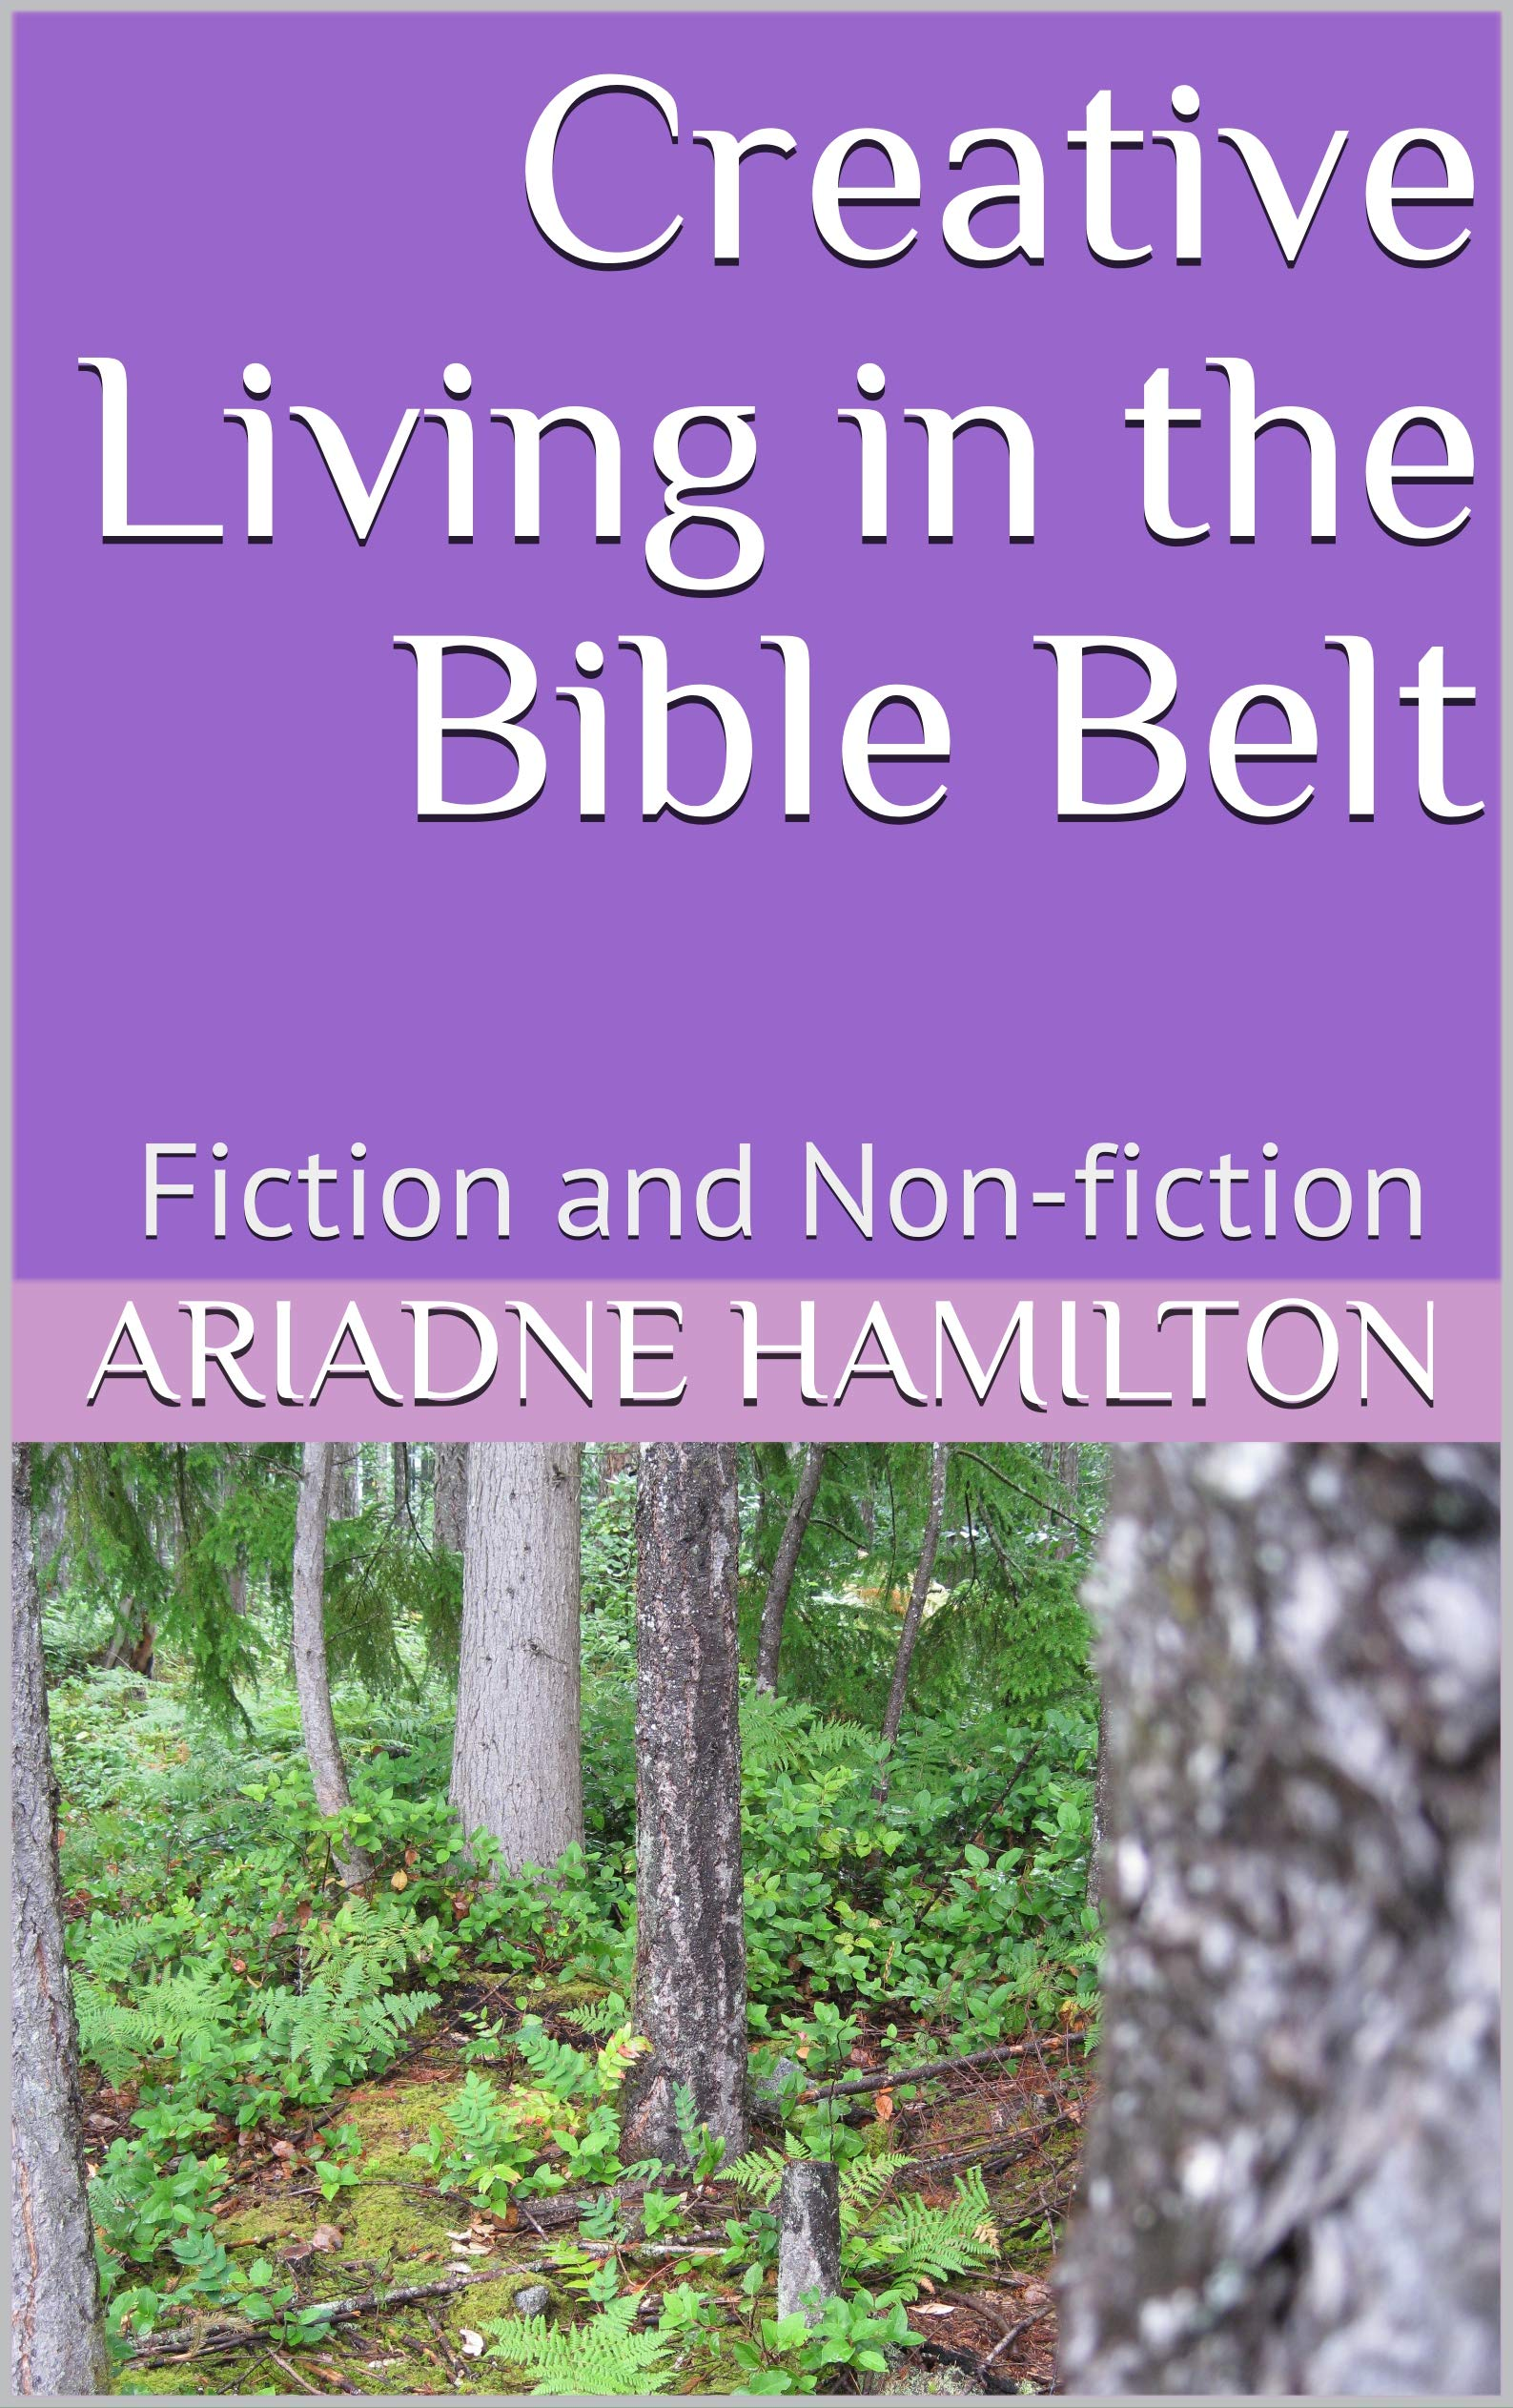 Creative Living in the Bible Belt: Fiction and Non-fiction